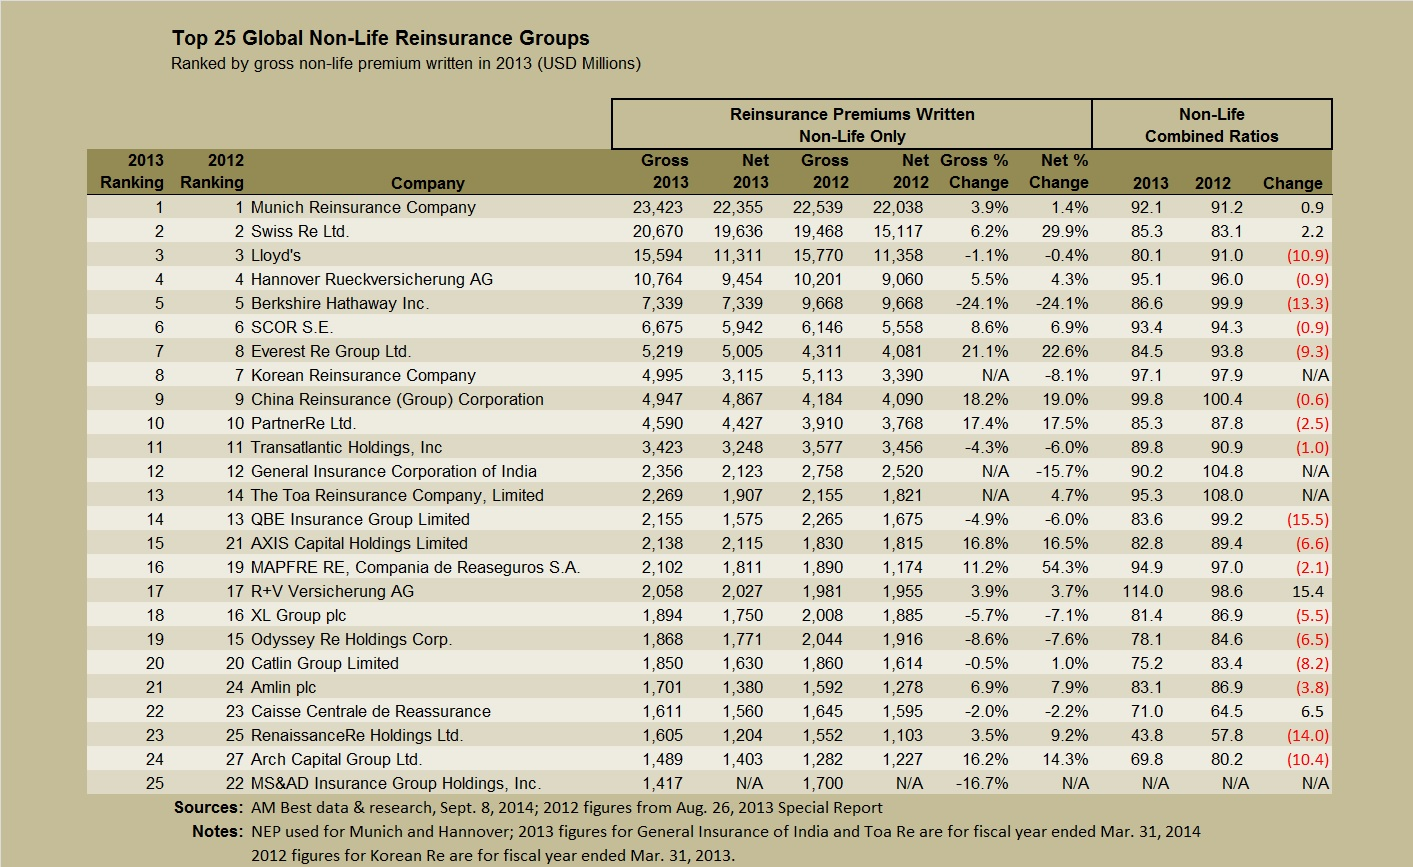 AMBEST Top 25 nonlife reinsurers Sept 2014 report with title corrected